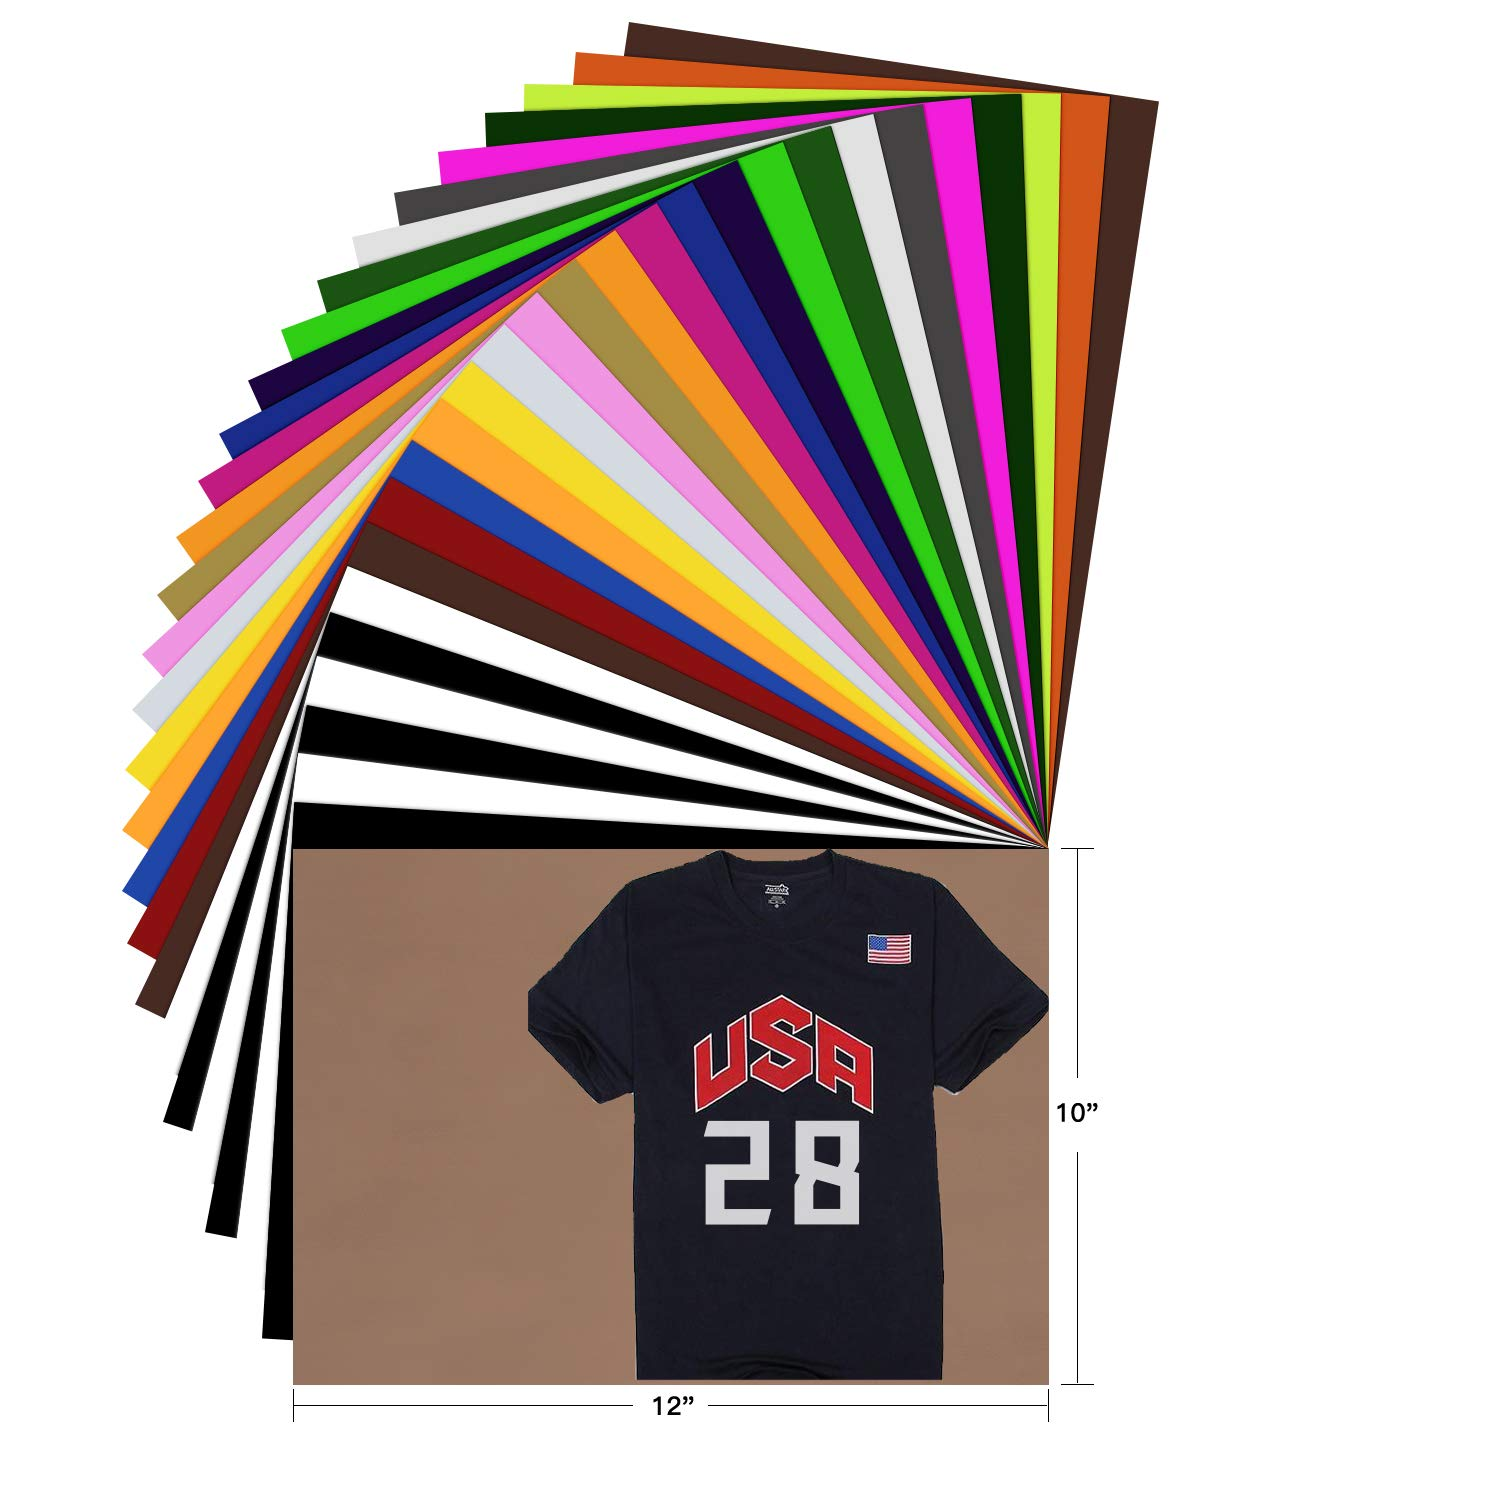 HTV Heat Transfer Vinyl Bundle - 28 Pack 12''x10'' Assorted Color Sheets for Cricut Silhouette Cameo or Other Heat Press Machine - Iron On Vinyl for DIY T-Shirts Clothing Garment Easy to Weed by YRYM HT by YRYM HT